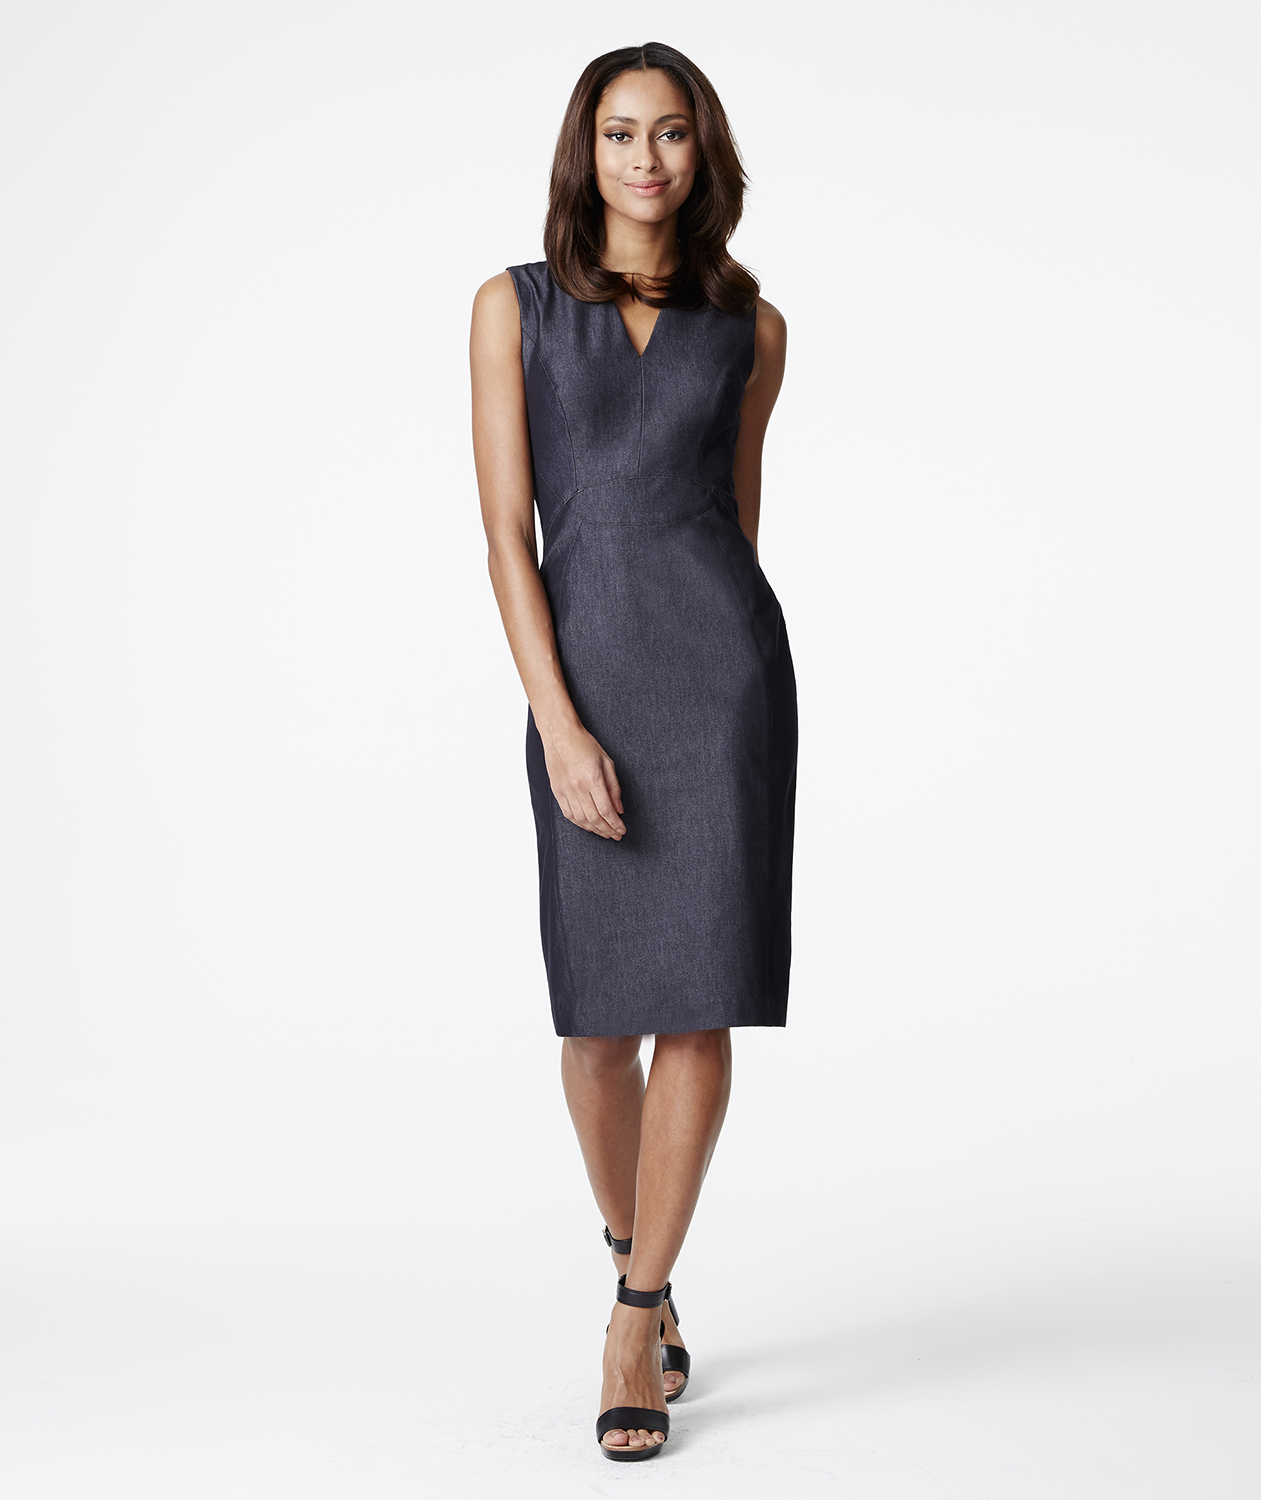 White House Black Market Denim Sheath Dress